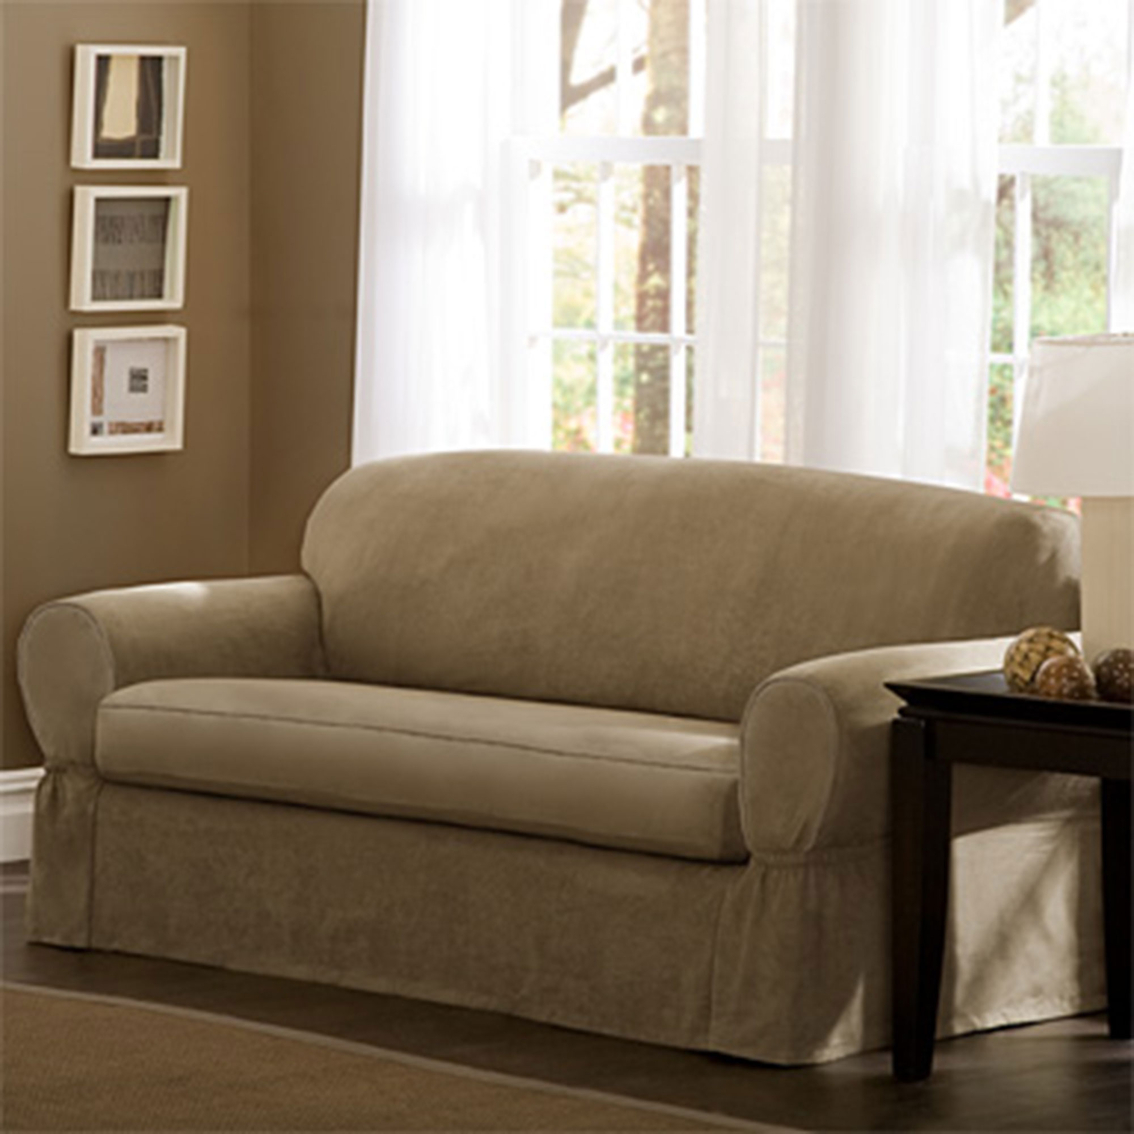 Incredible Maytex Piped Faux Suede 2 Pc Sofa Slipcover Slipcovers Alphanode Cool Chair Designs And Ideas Alphanodeonline